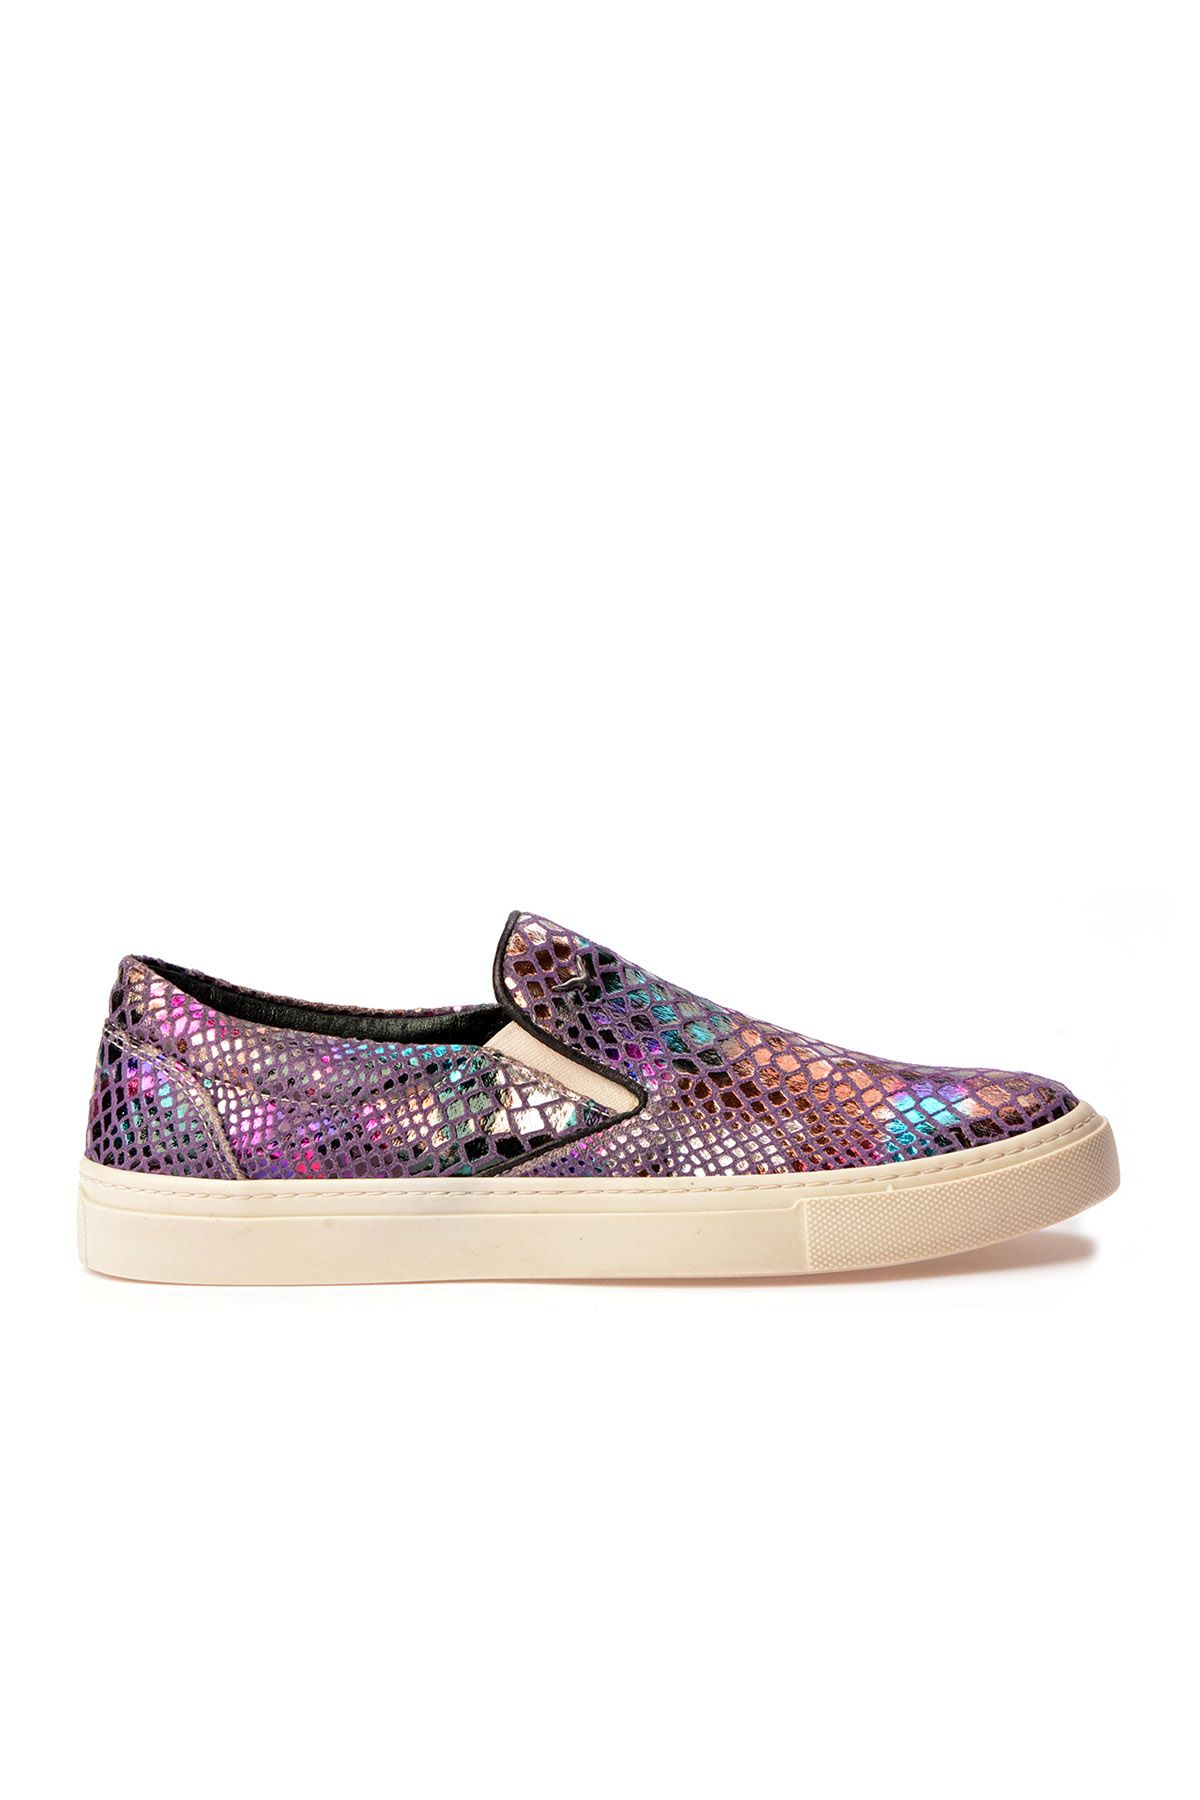 Art Goya Women Sneakers From Genuine Leather With Snake Pattern Rainbow-hued